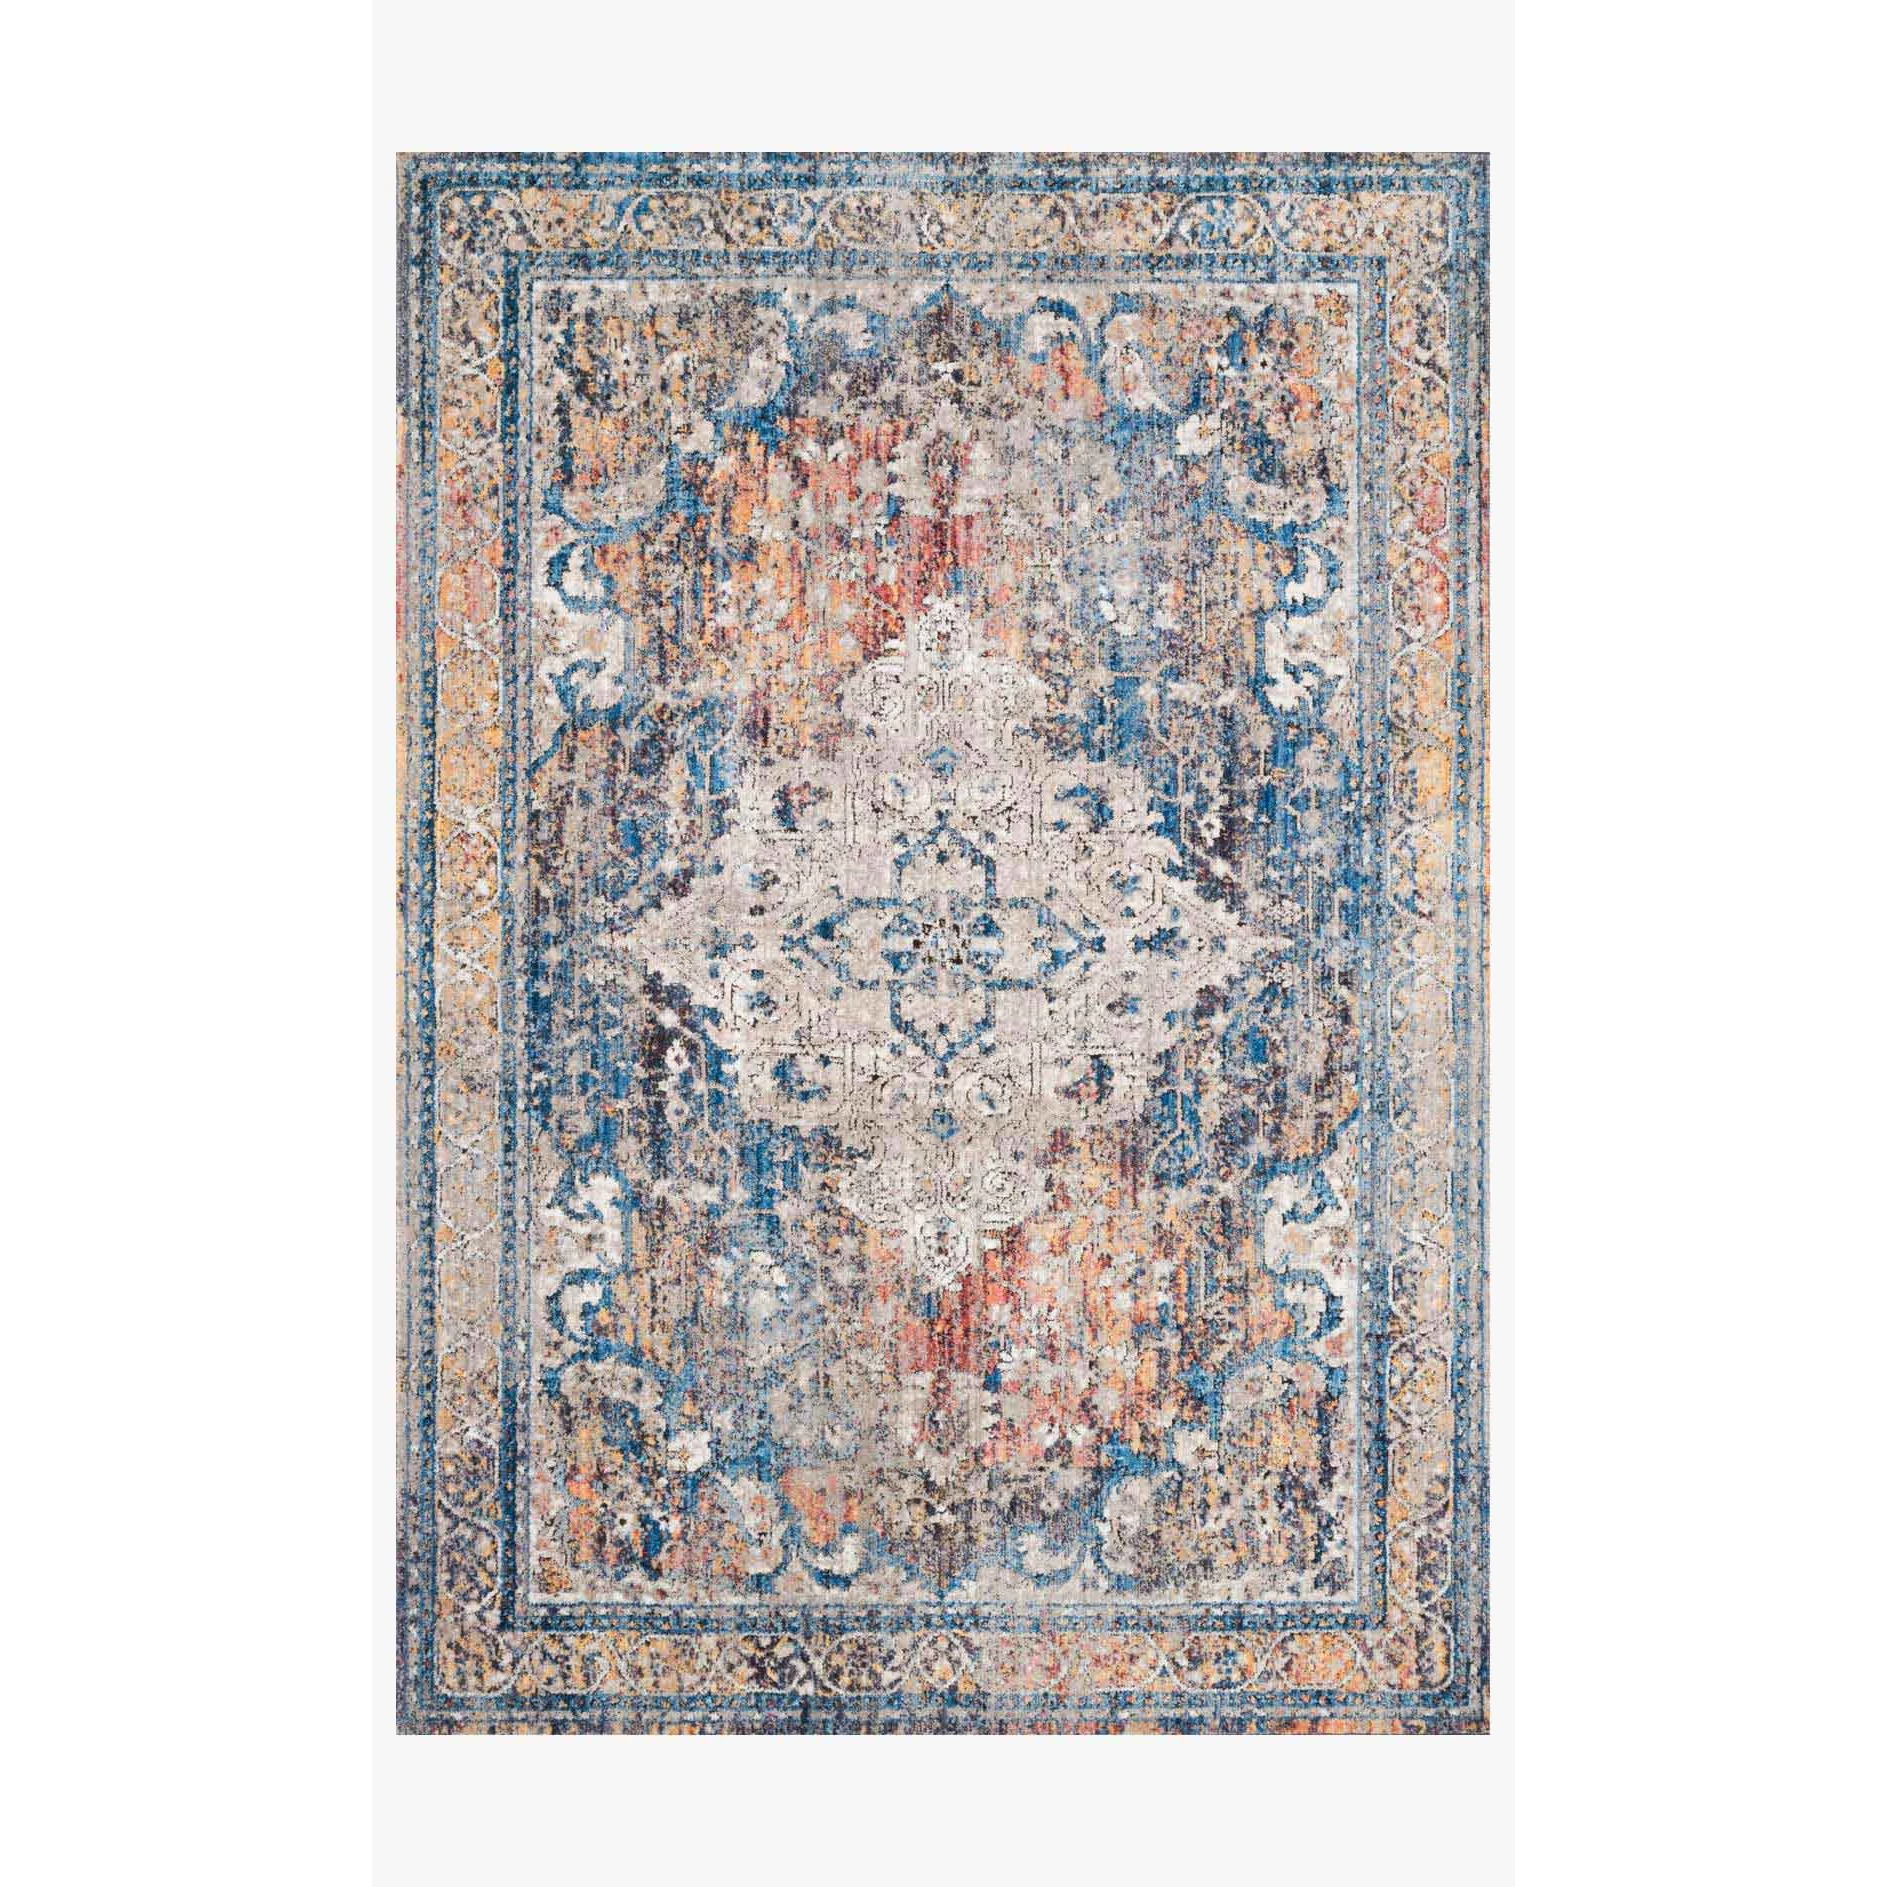 Dante Rugs by Loloi - DN-04 Multi / Stone-Loloi Rugs-Blue Hand Home